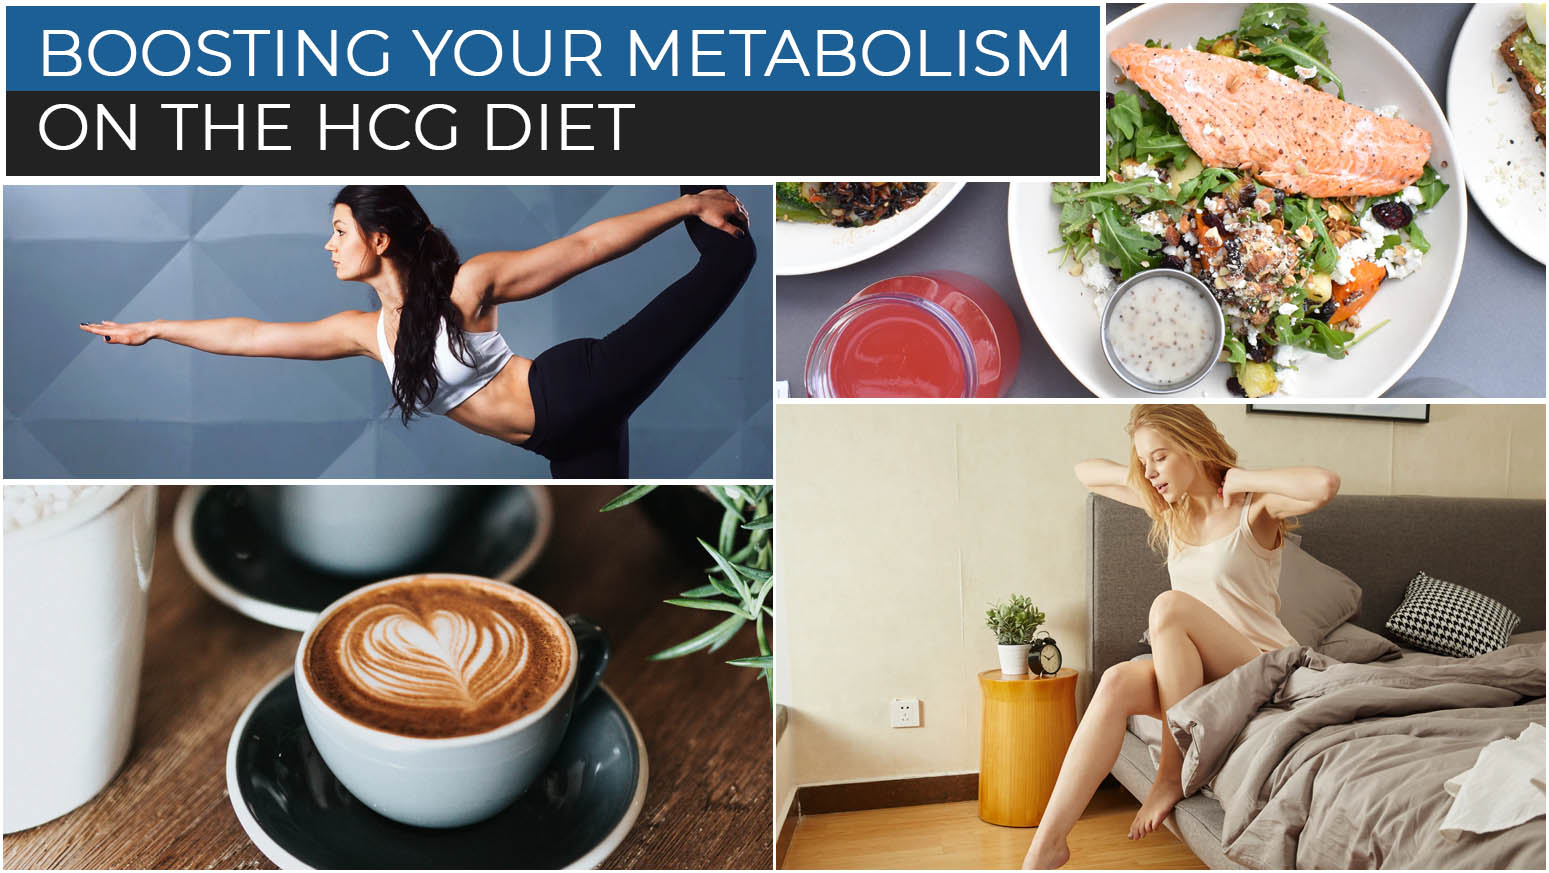 BOOSTING YOUR METABOLISM ON THE HCG DIET